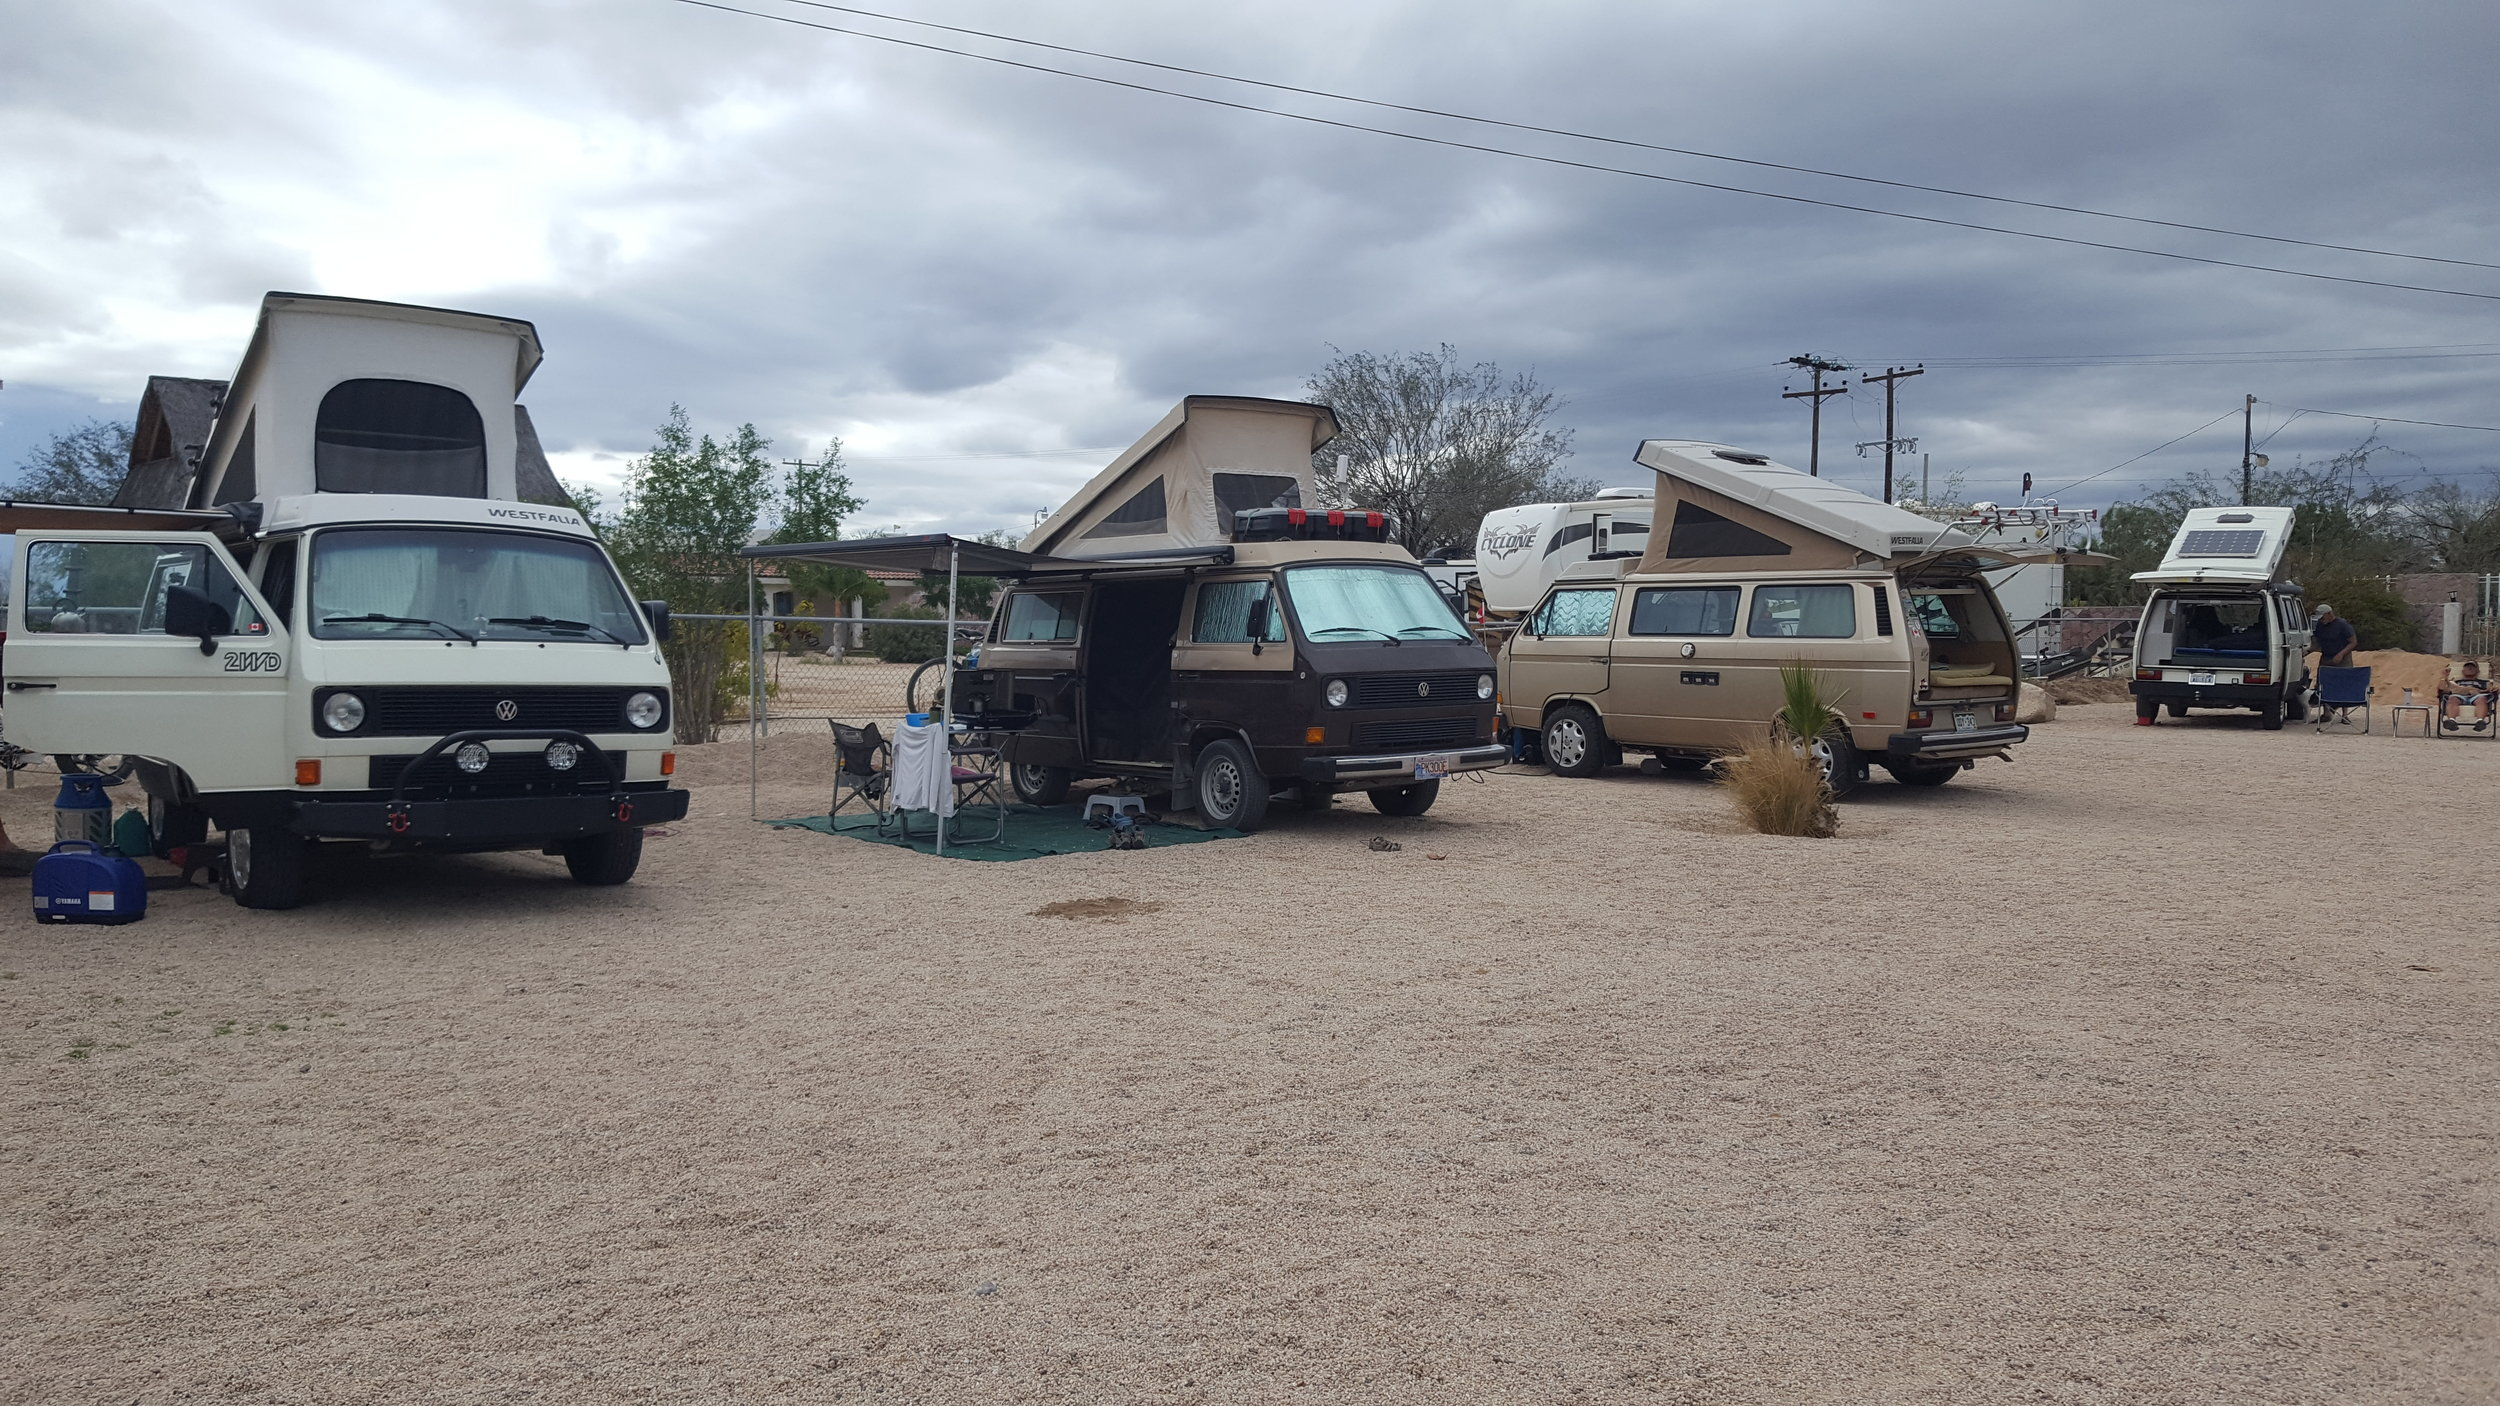 Our crew set up for a few moody days at Marantha Campground, outside La Paz, Baja